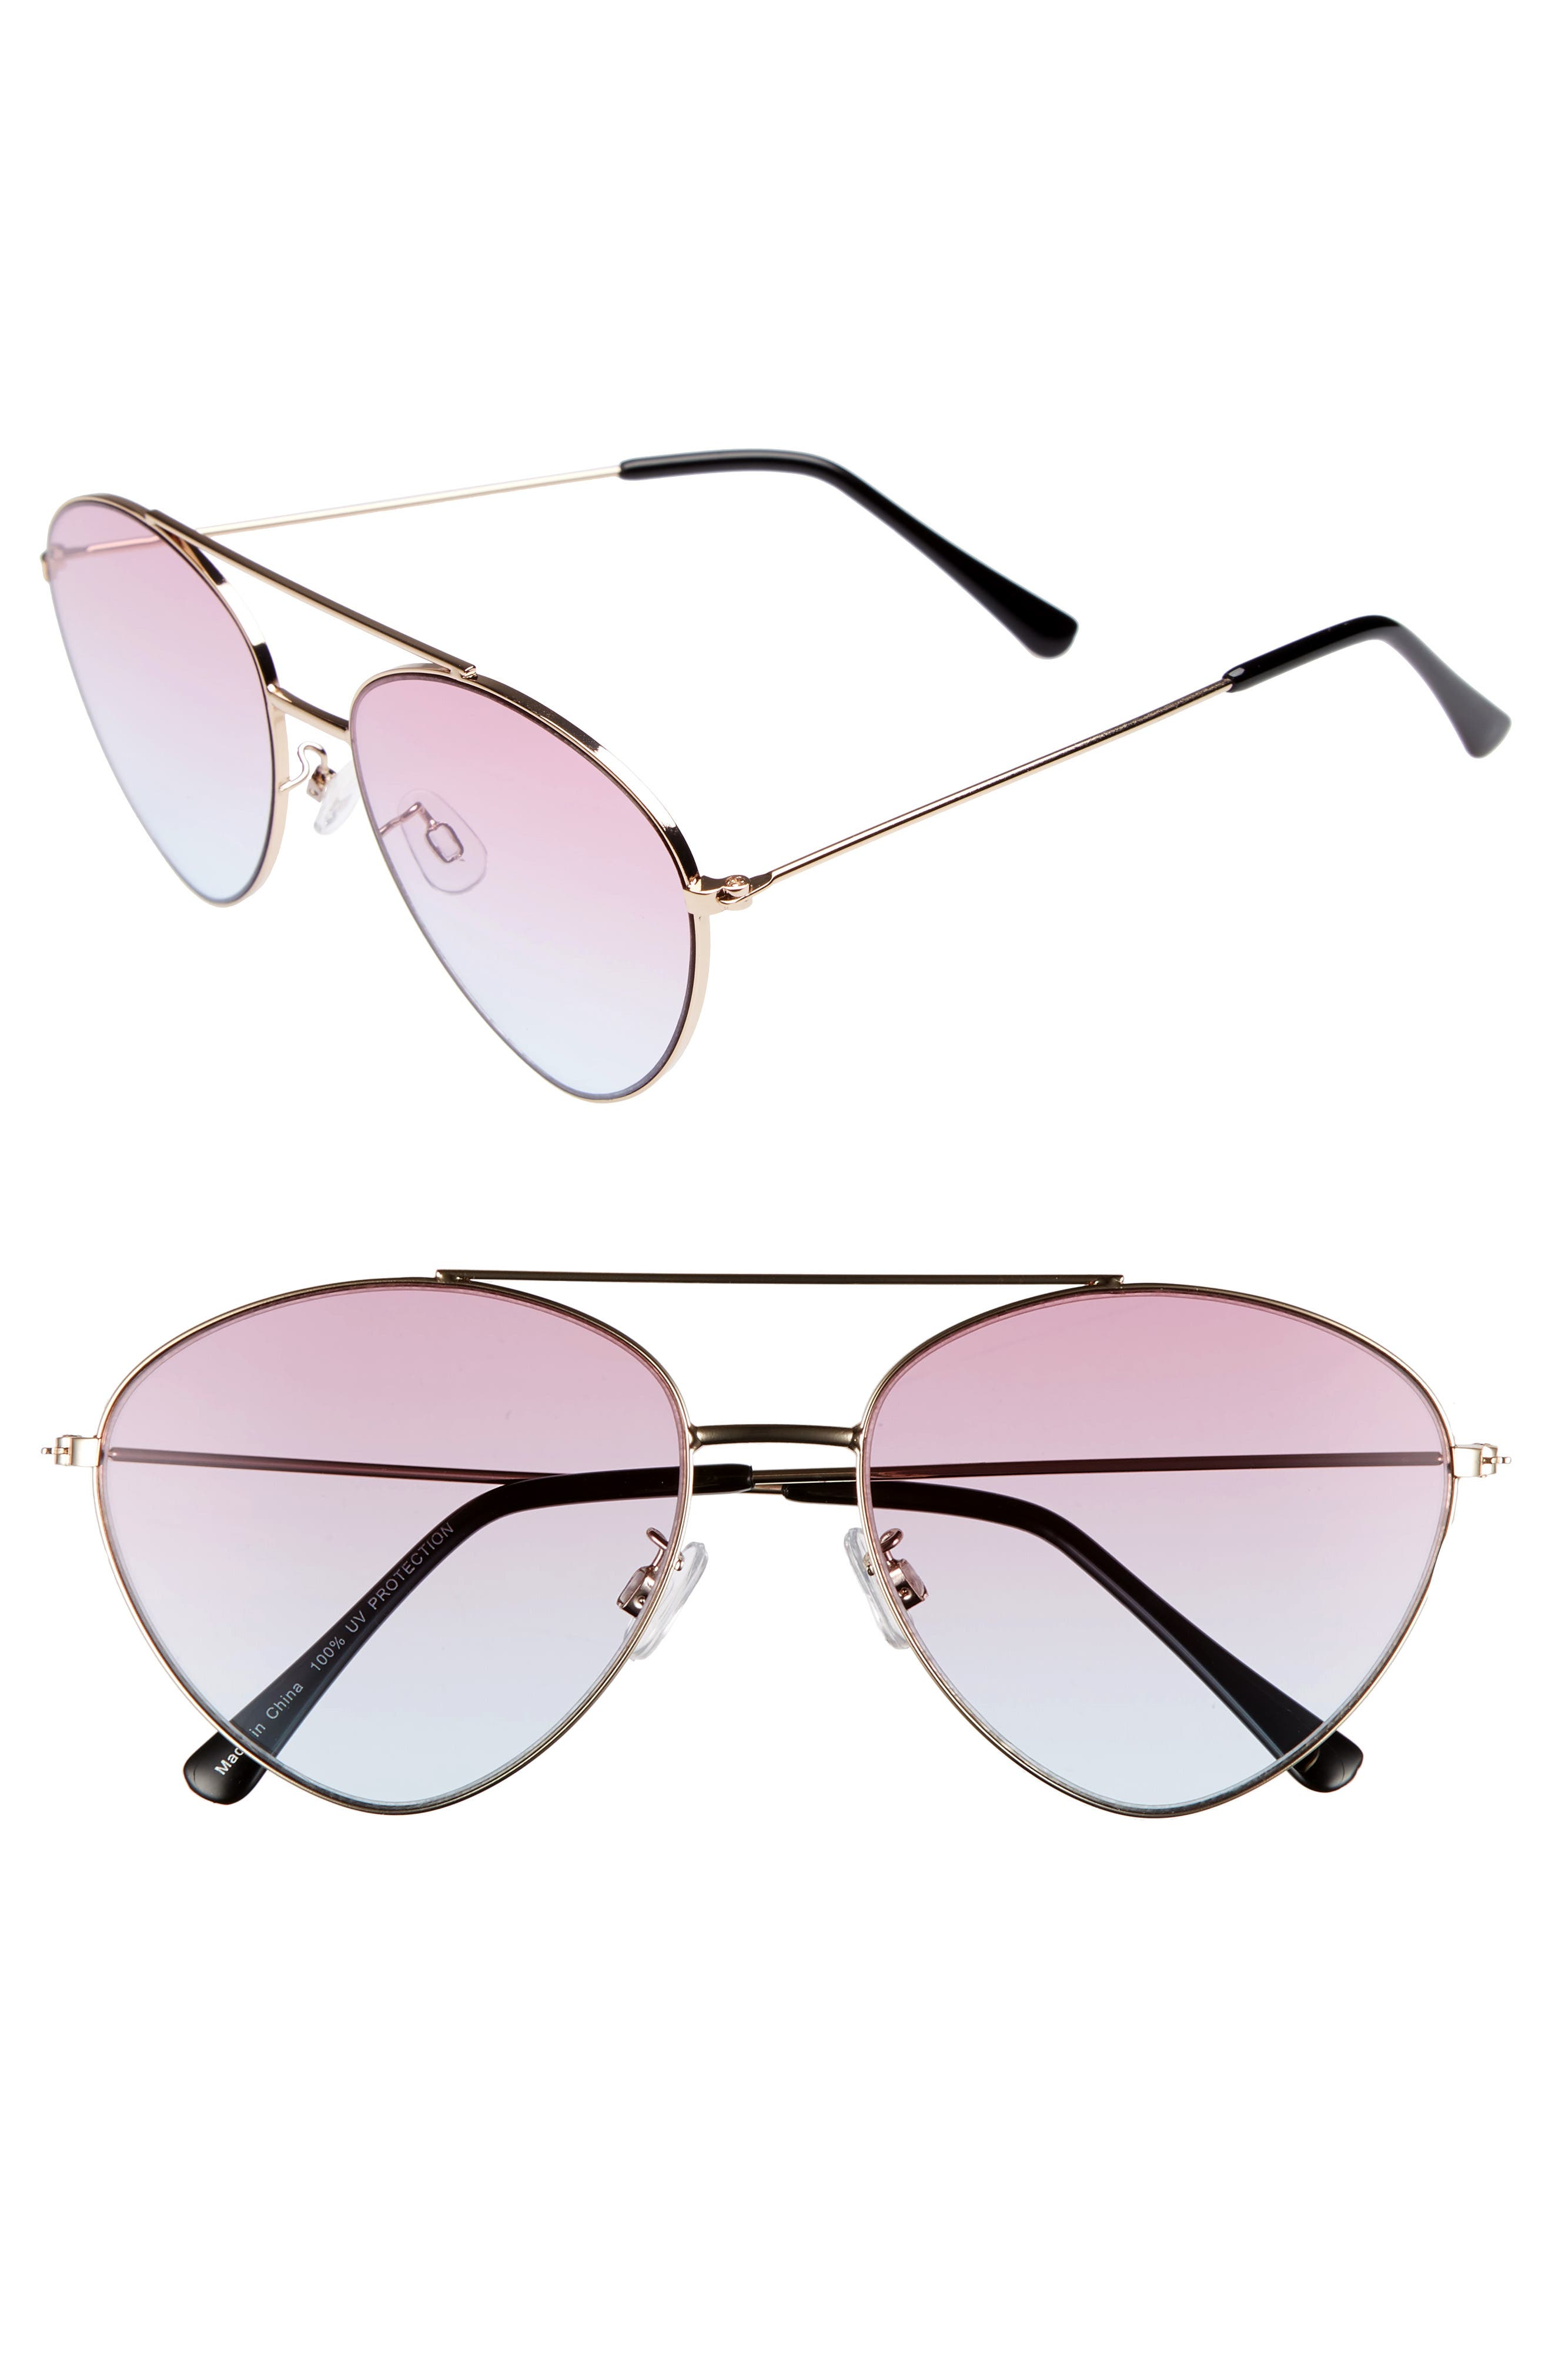 56mm Gradient Aviator Sunglasses,                             Main thumbnail 1, color,                             Gold/ Pink/ Blue